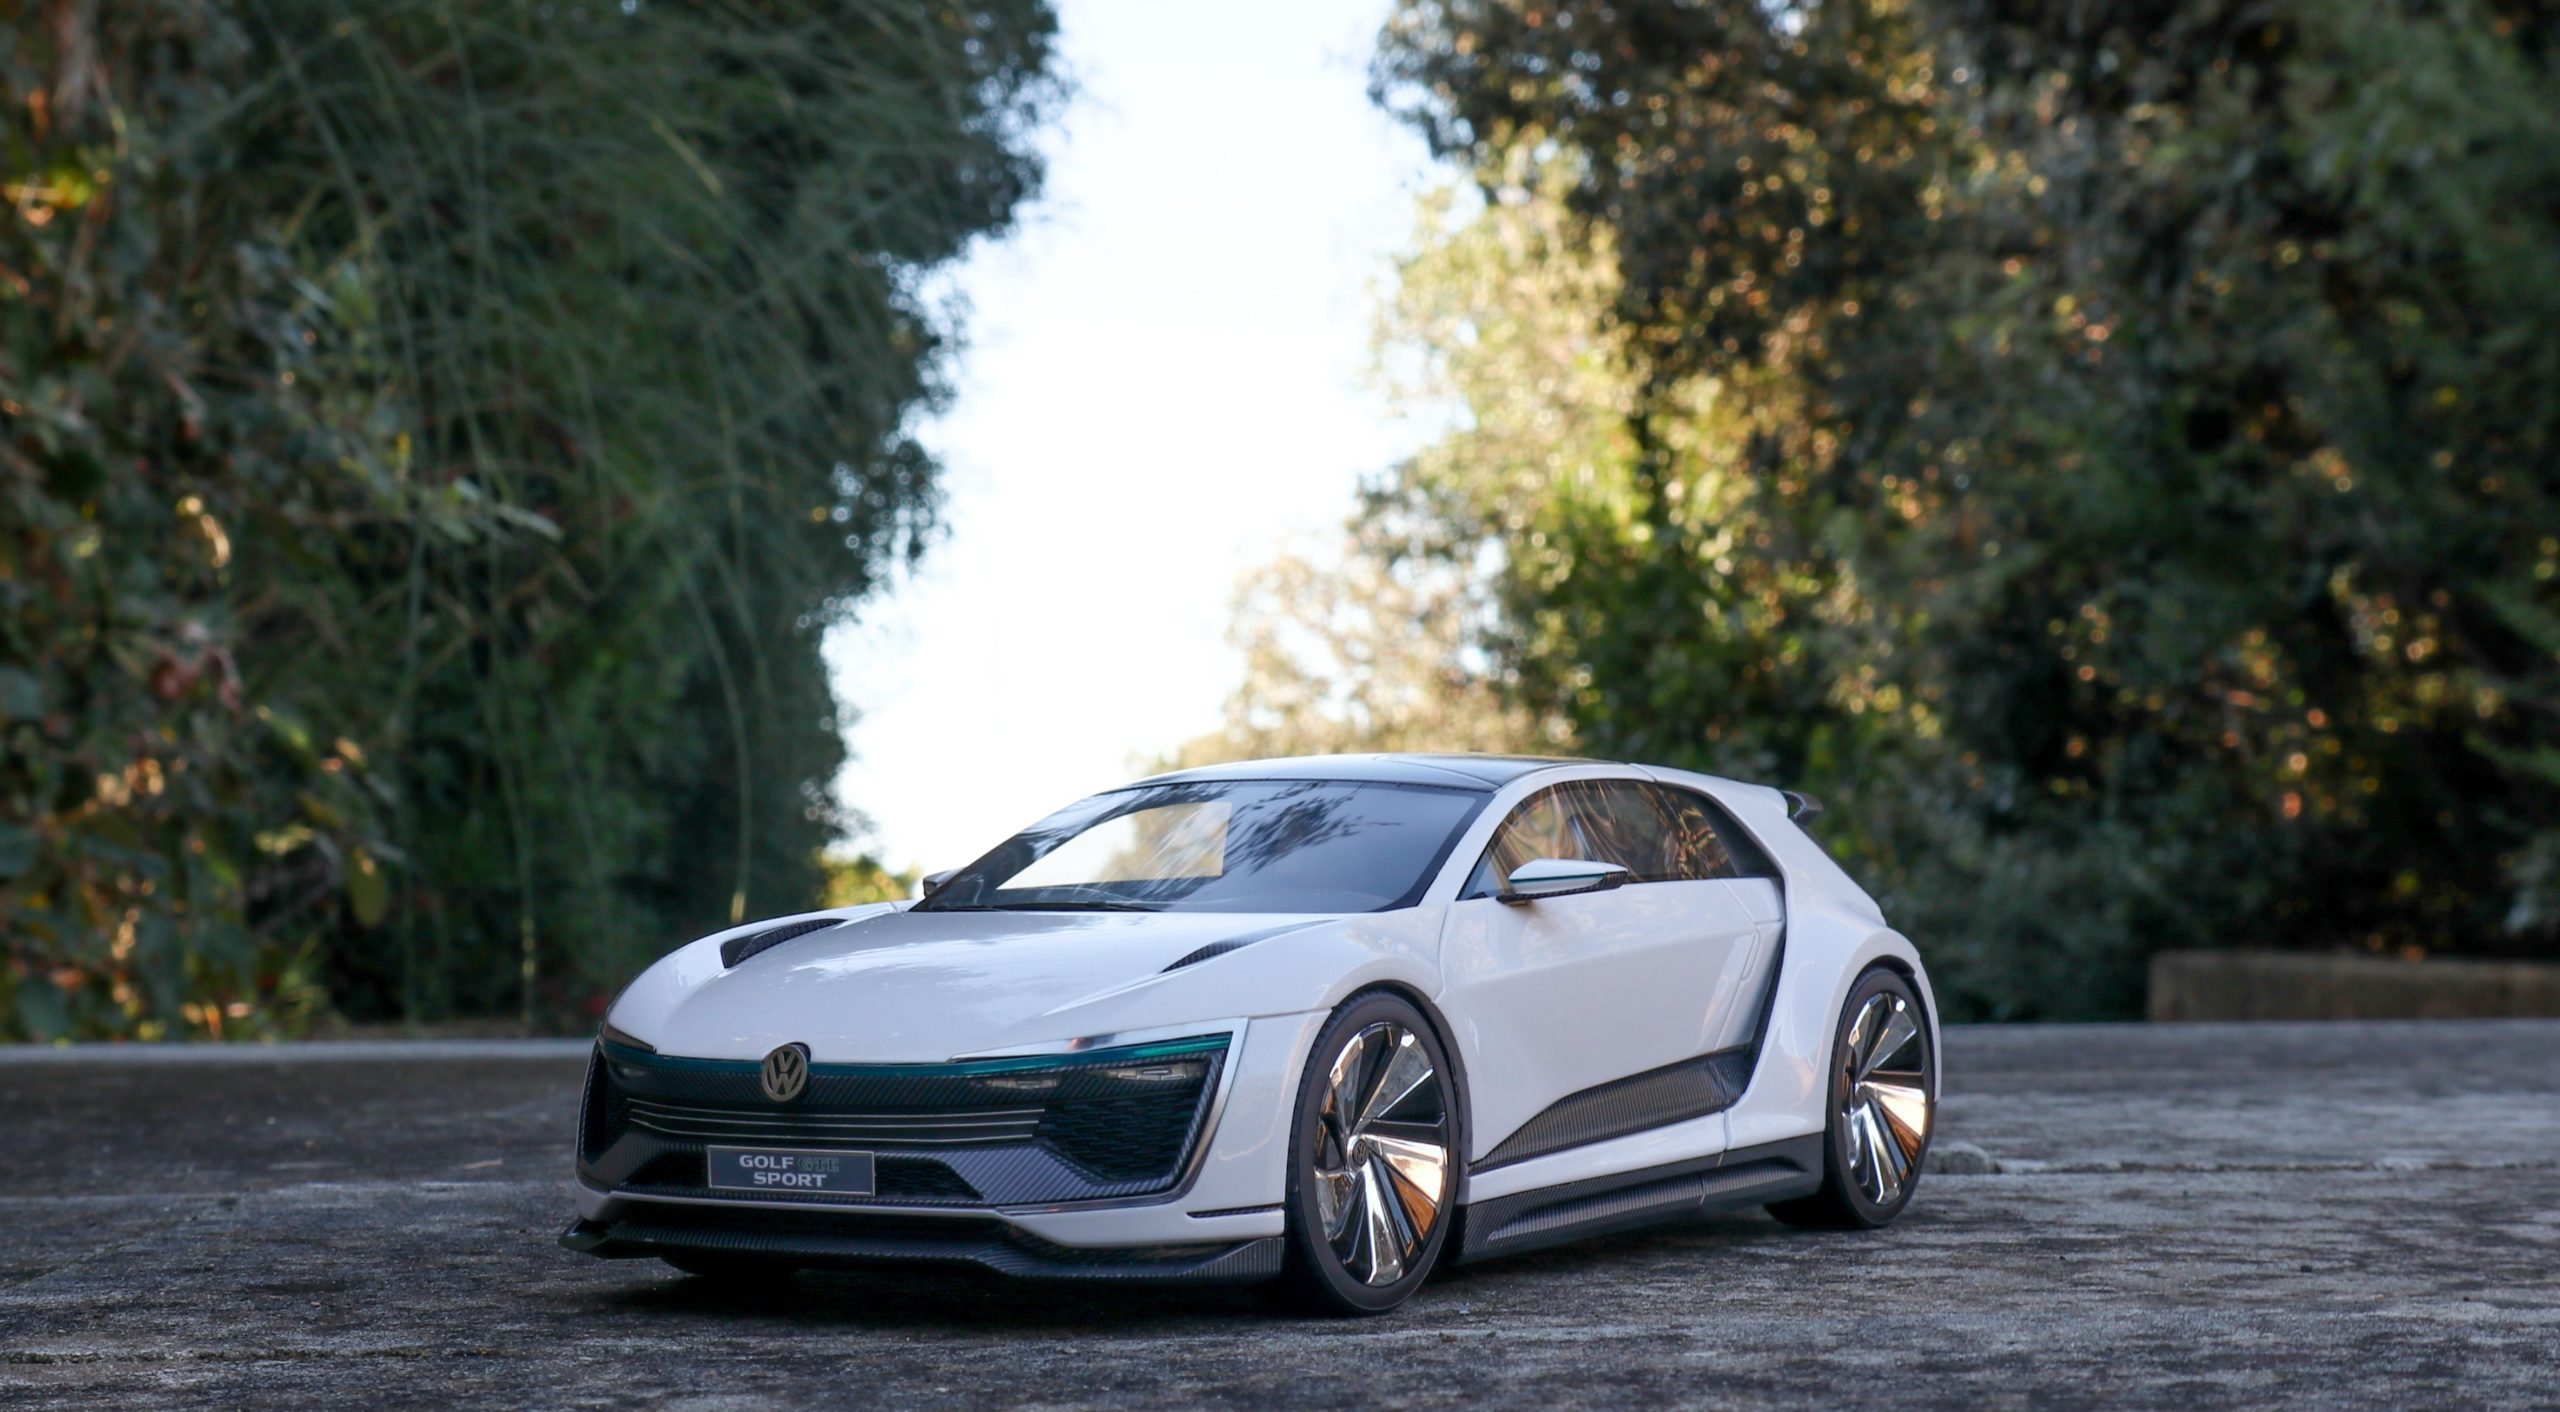 VW Golf GTE Sport Concept DNA Collectibles